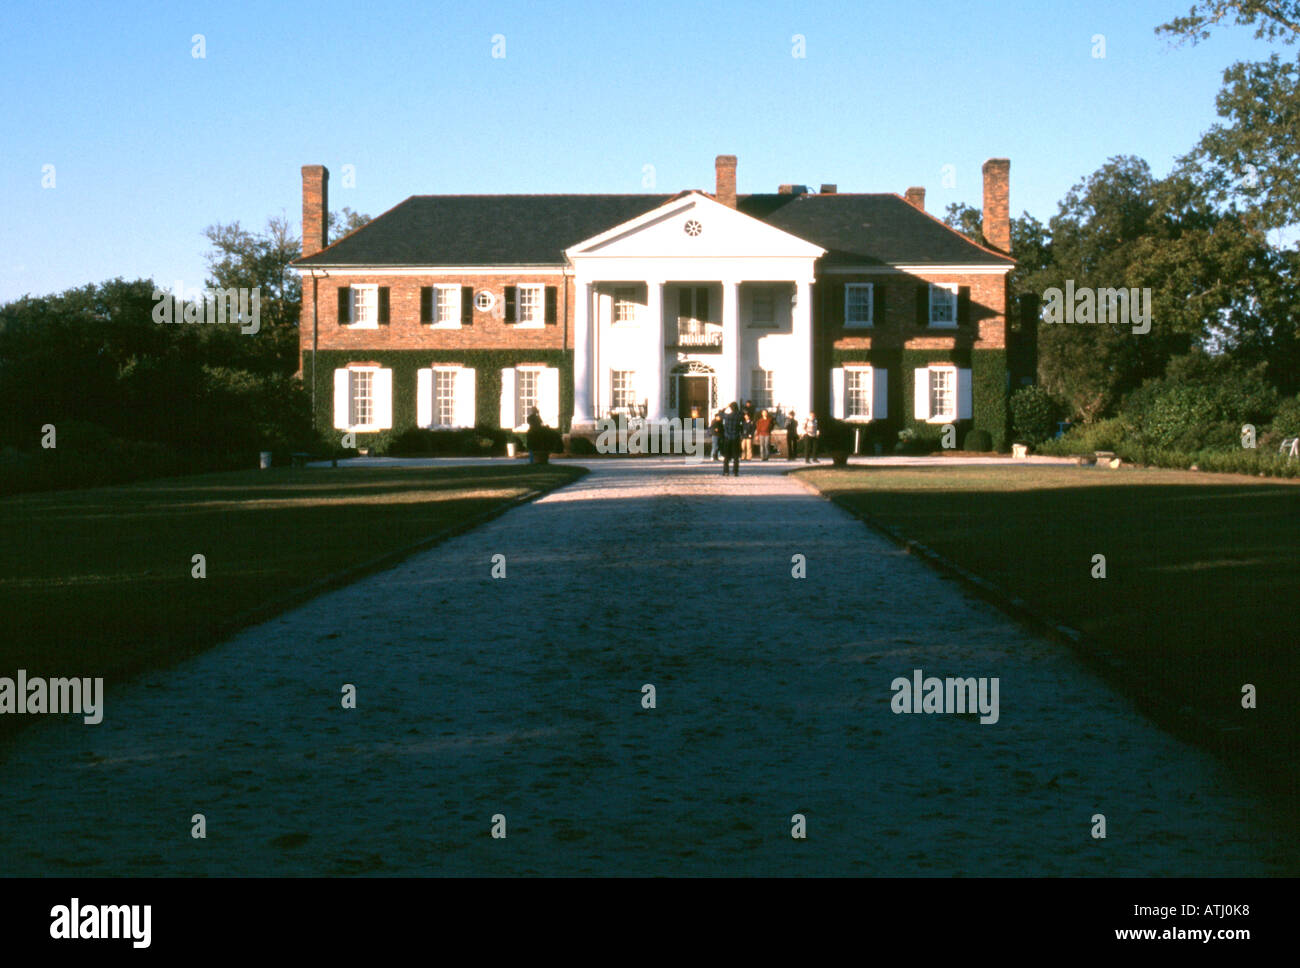 Cotton plantation mansion in Deep South of USA - Stock Image